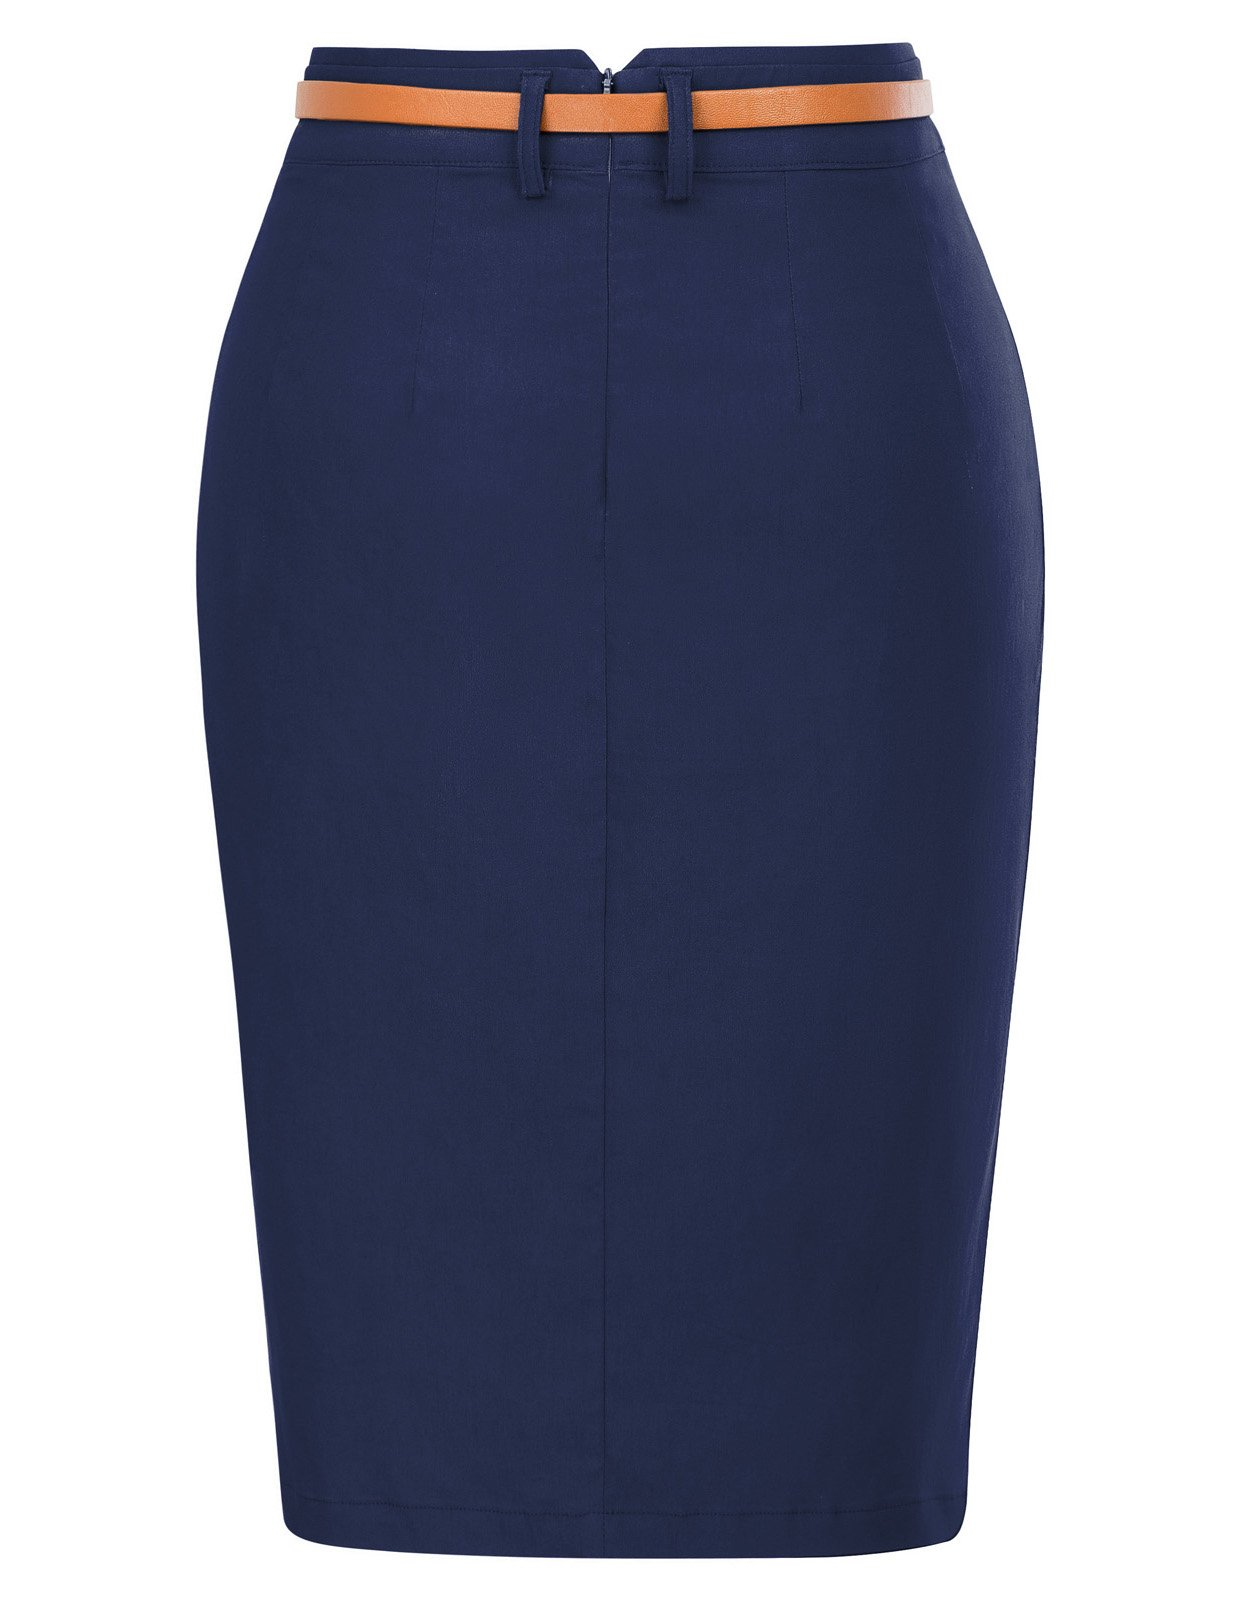 Kate Kasin Women's Casual Midi Bodycon Career Pencil Skirt with Belt Size M Navy Blue